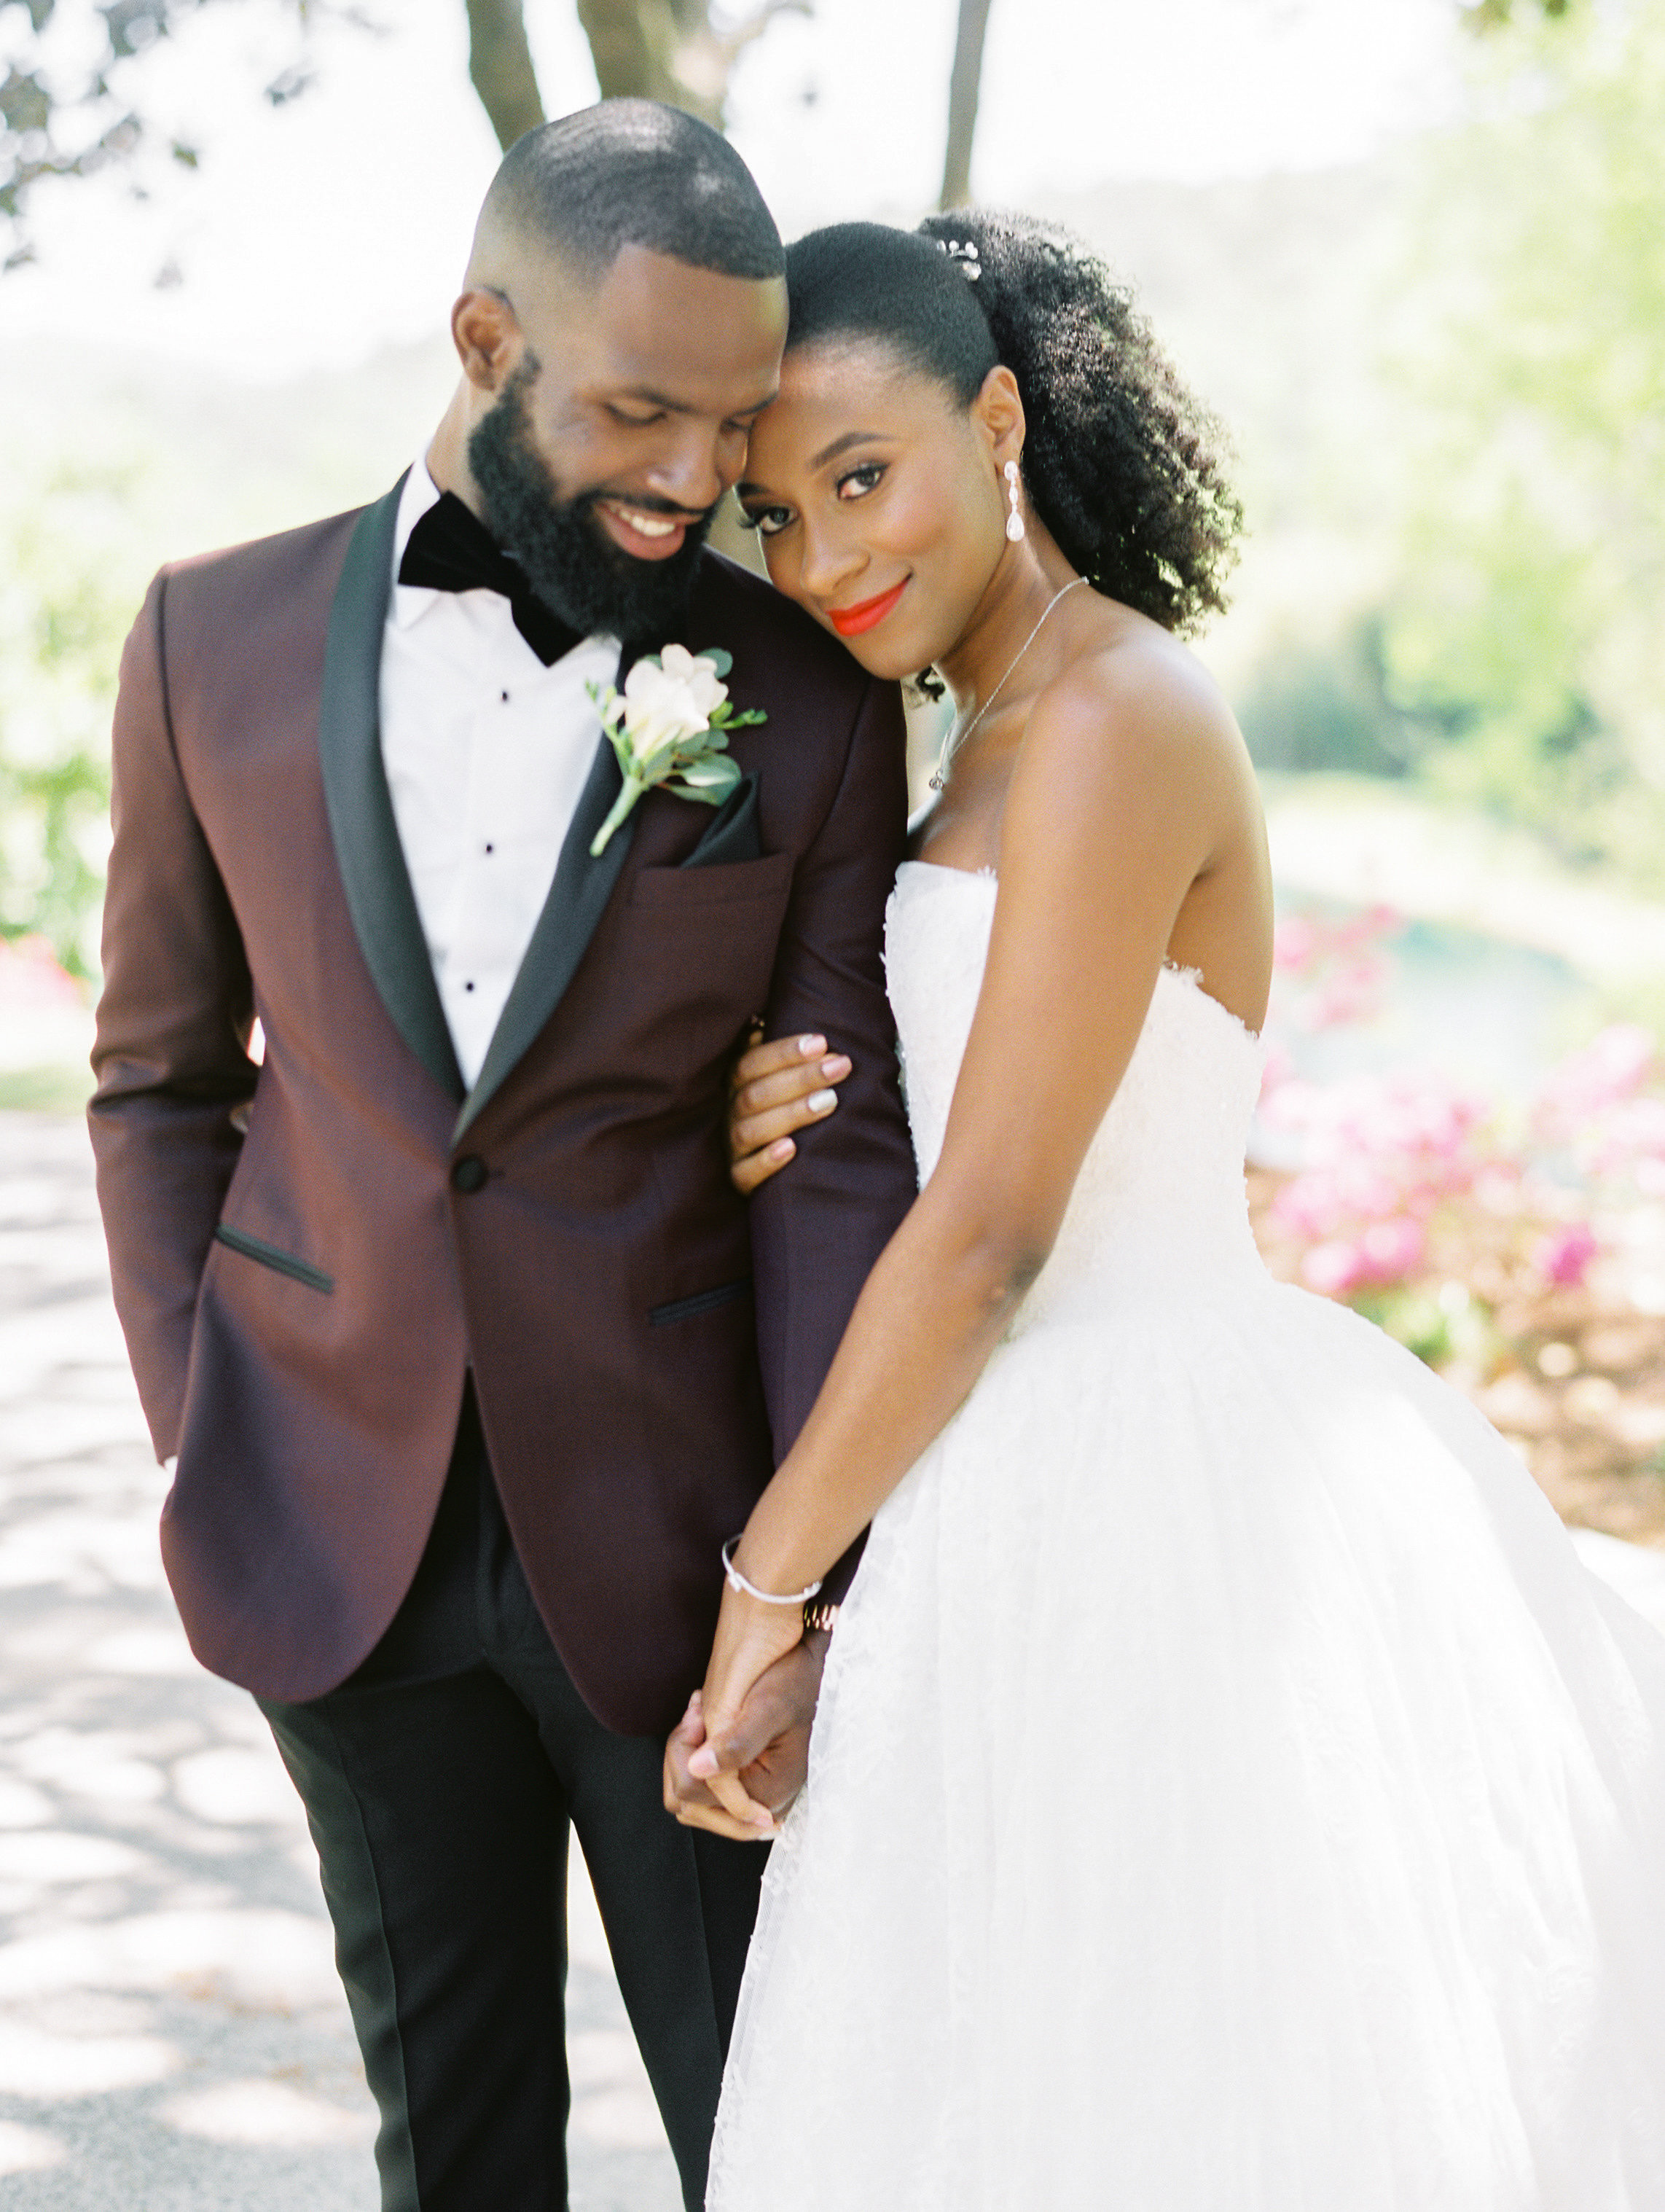 One Couple Personalized Their Elegant Southern Wedding